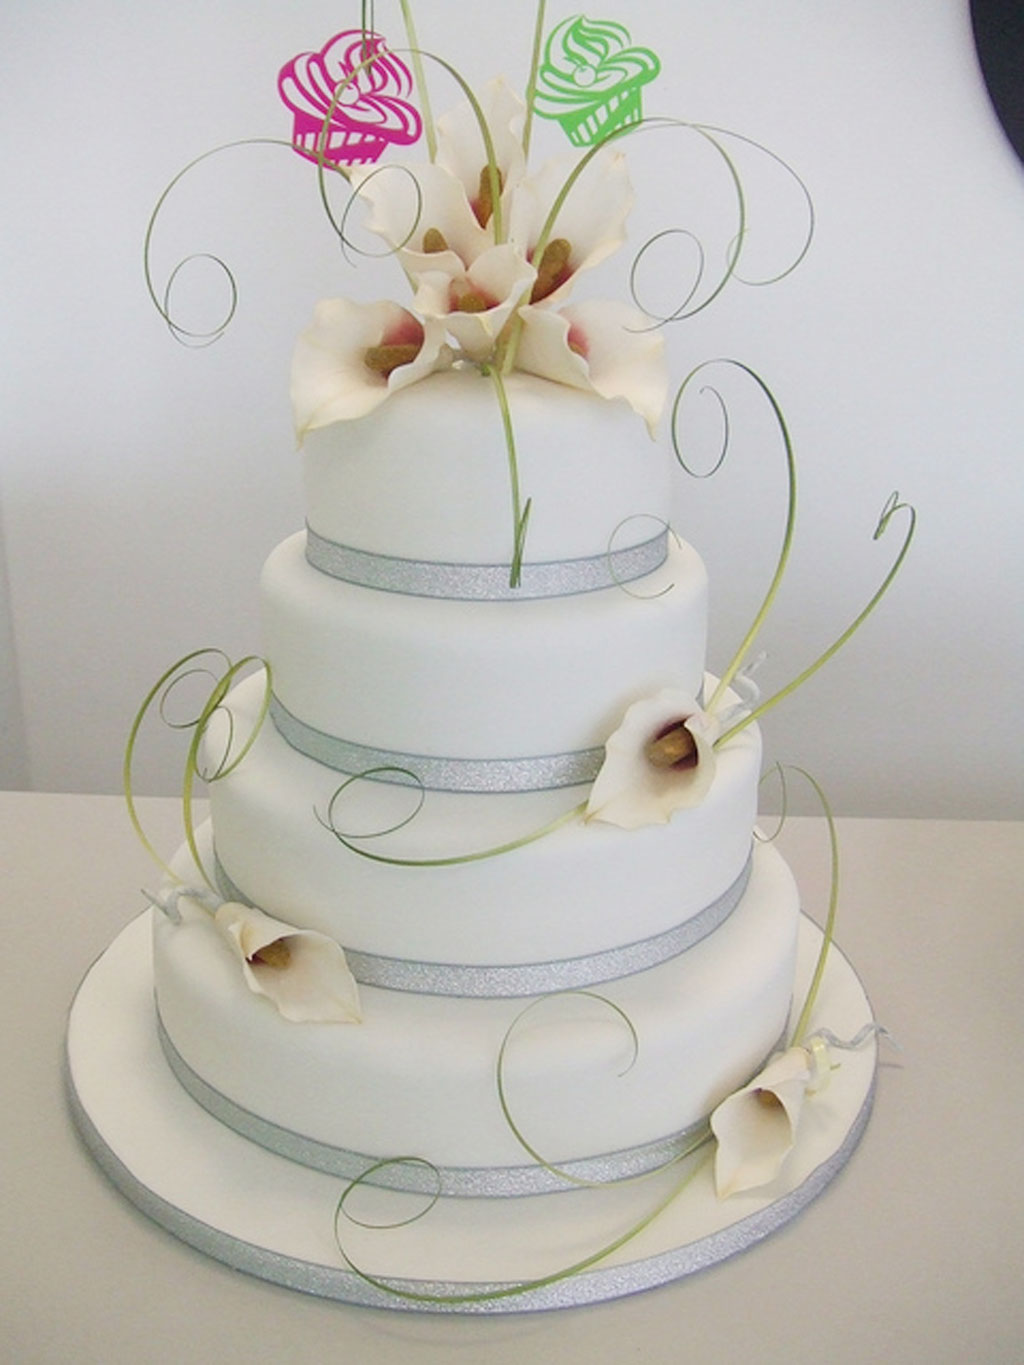 Cake Decorations For Wedding Cakes : Calla Lily Wedding Cake Ideas Wedding Cake - Cake Ideas by ...